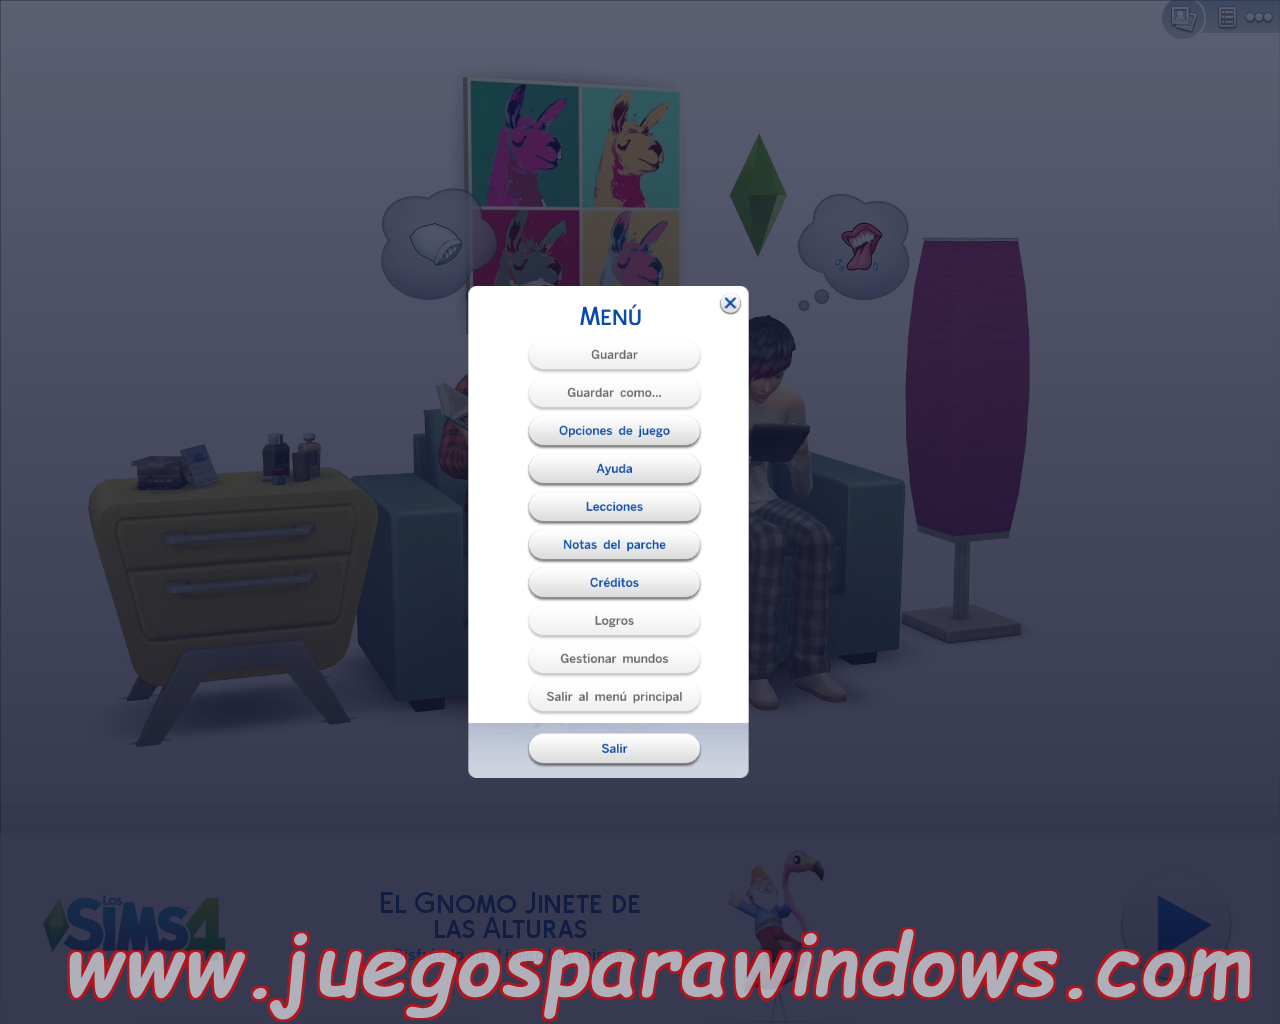 Los Sims 4 Digital Deluxe Edition ESPAÑOL PC Full + Update v1.4.83.1010 Incl DLC (RELOADED) 8